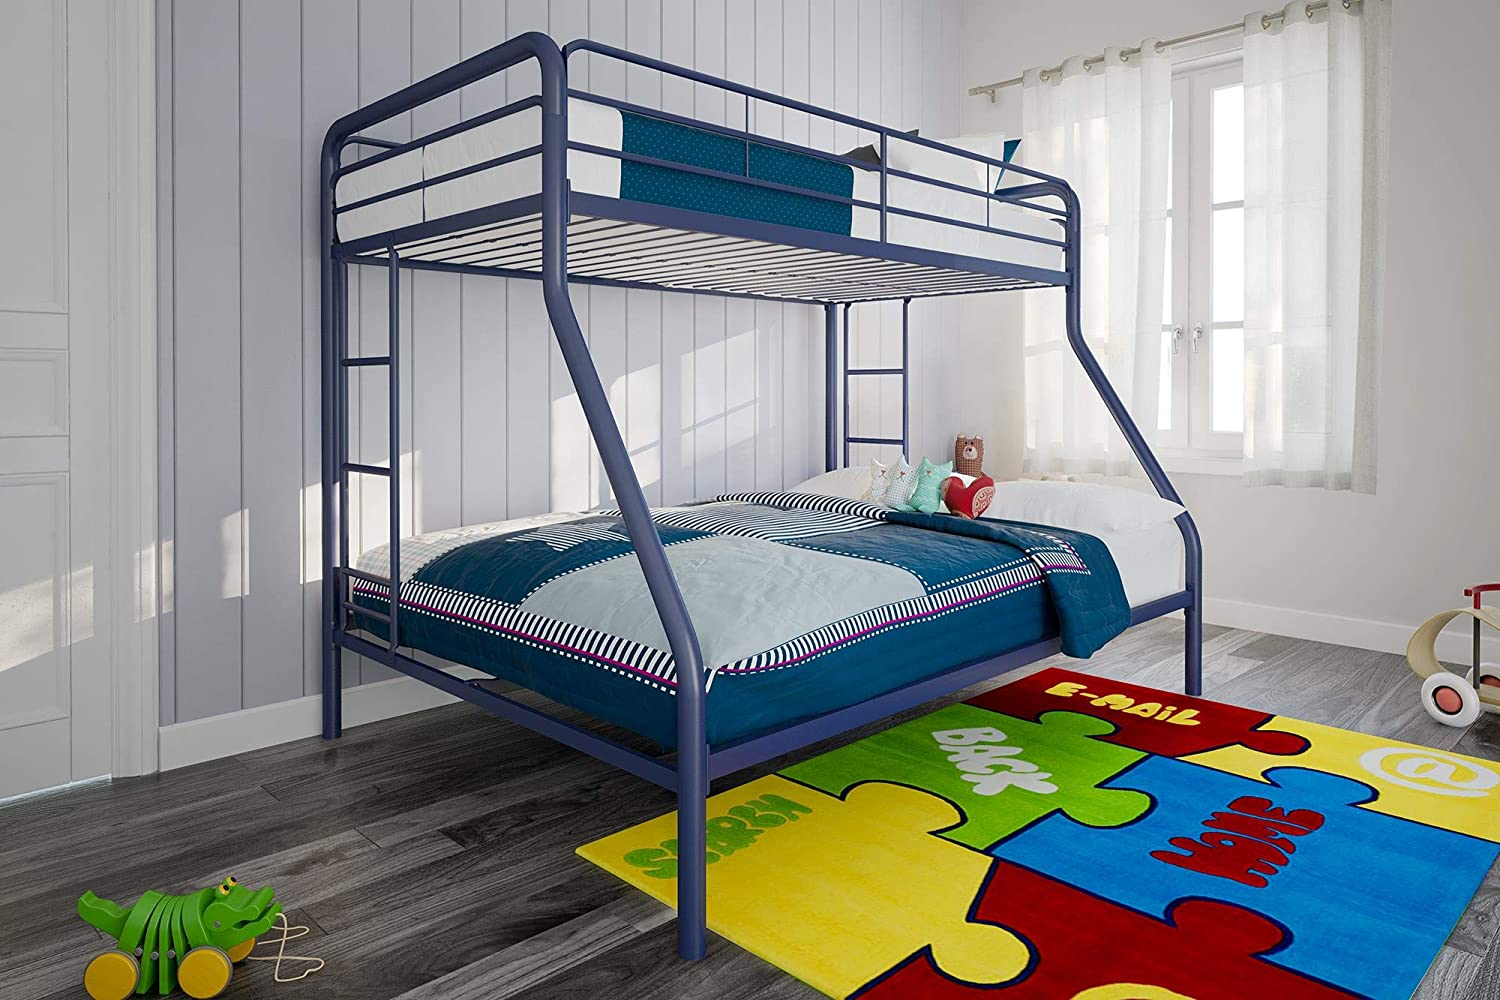 Buy Dhp Twin Over Full Bunk Bed With Metal Frame And Ladder Space Saving Design Blue Online In Turkey B077jbmr7f